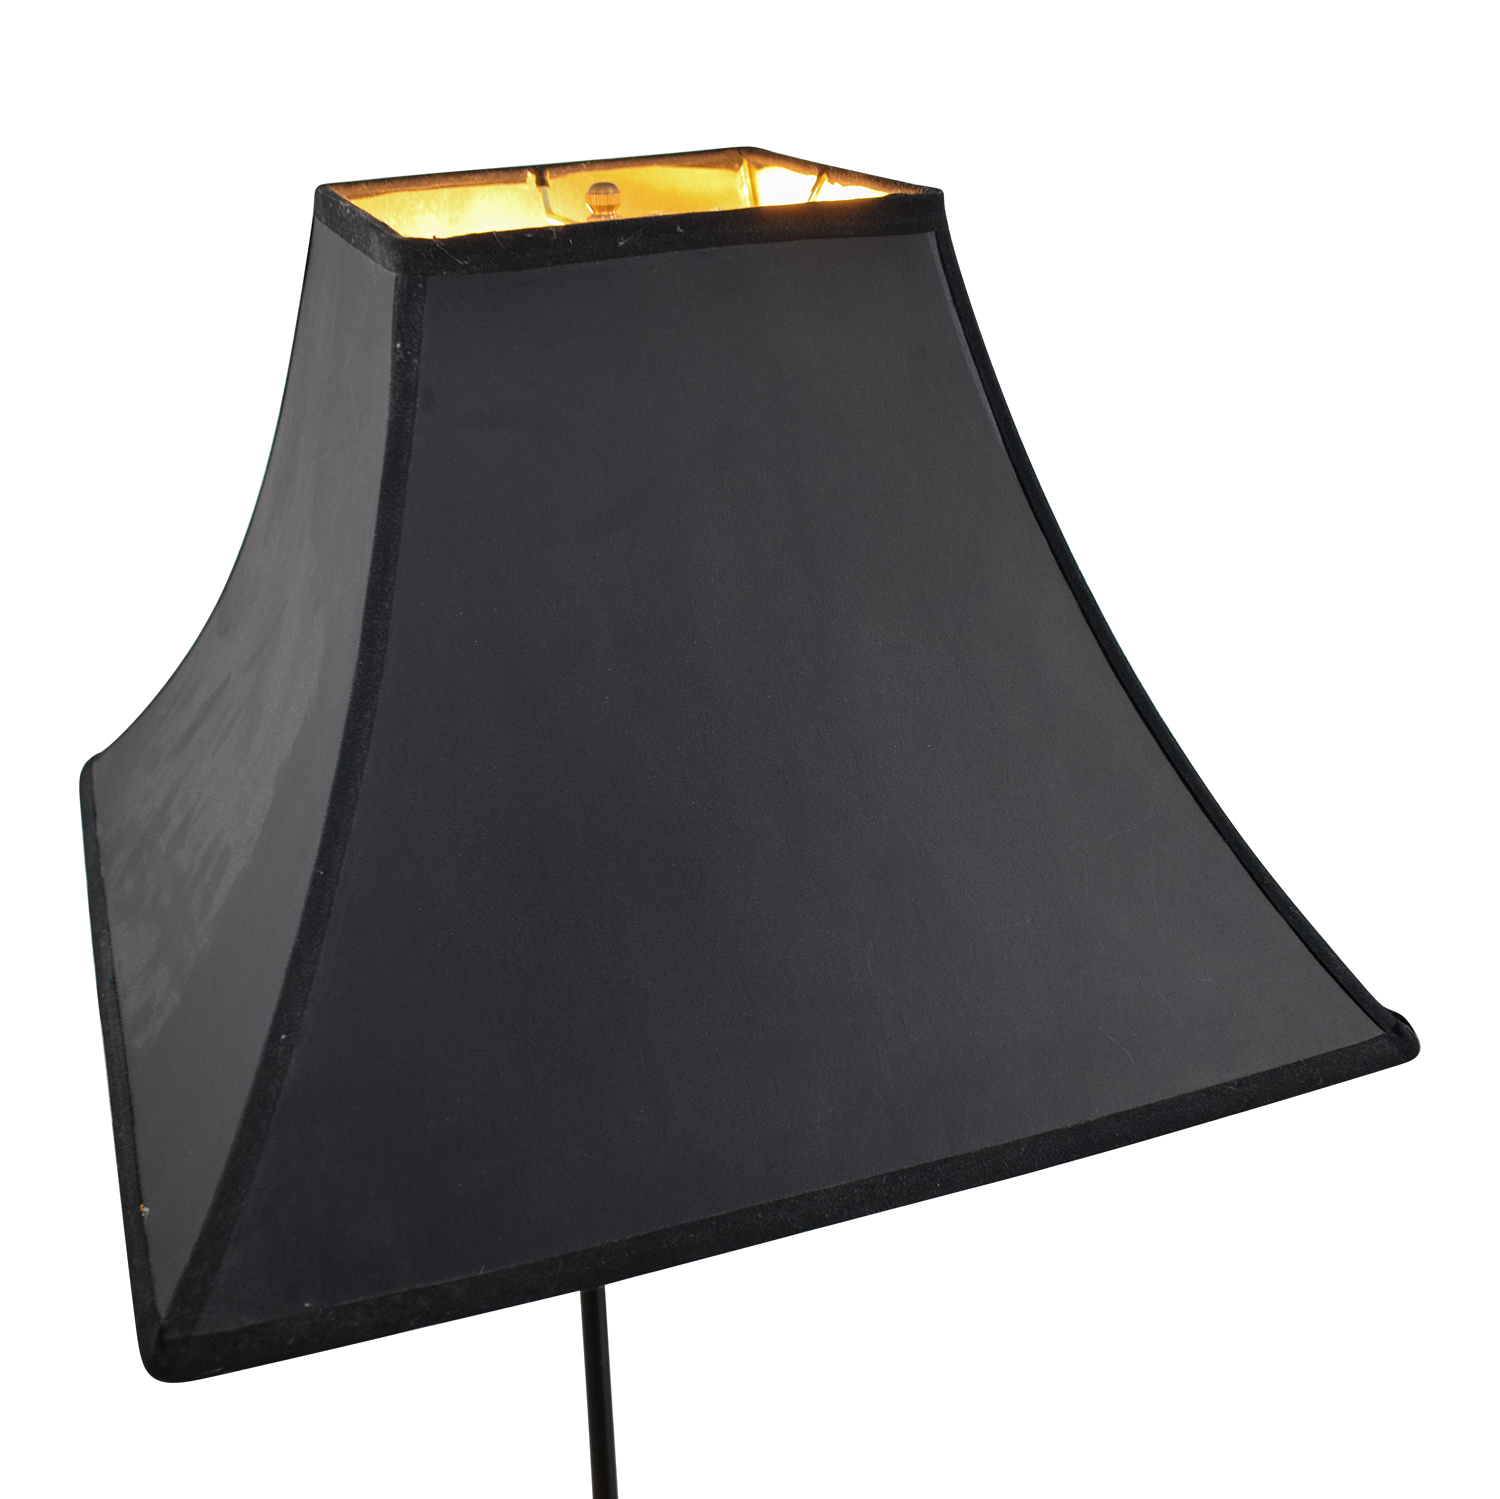 Glass Table Floor Lamp for sale